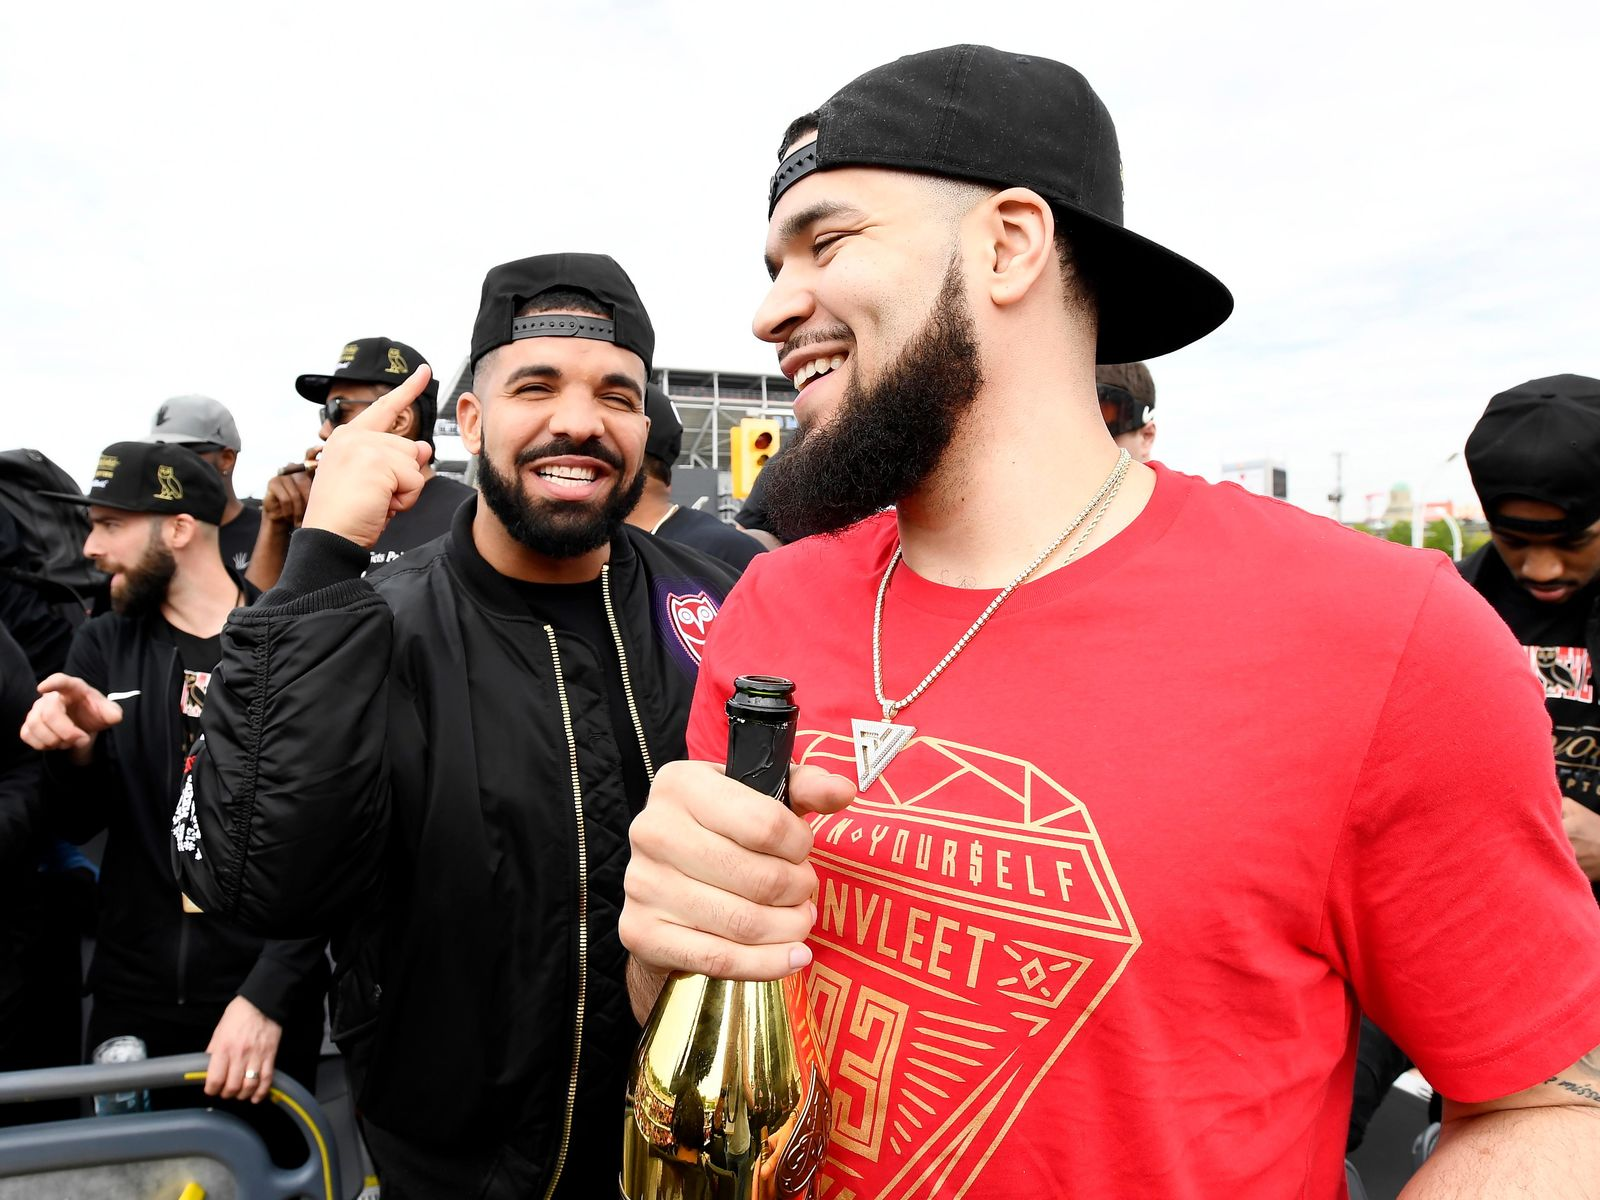 Toronto Raptors guard Fred VanVleet, right, celebrates with performing artist Drake during the 2019 Toronto Raptors NBA basketball championship parade in Toronto, Monday, June 17, 2019. (Frank Gunn/The Canadian Press via AP)